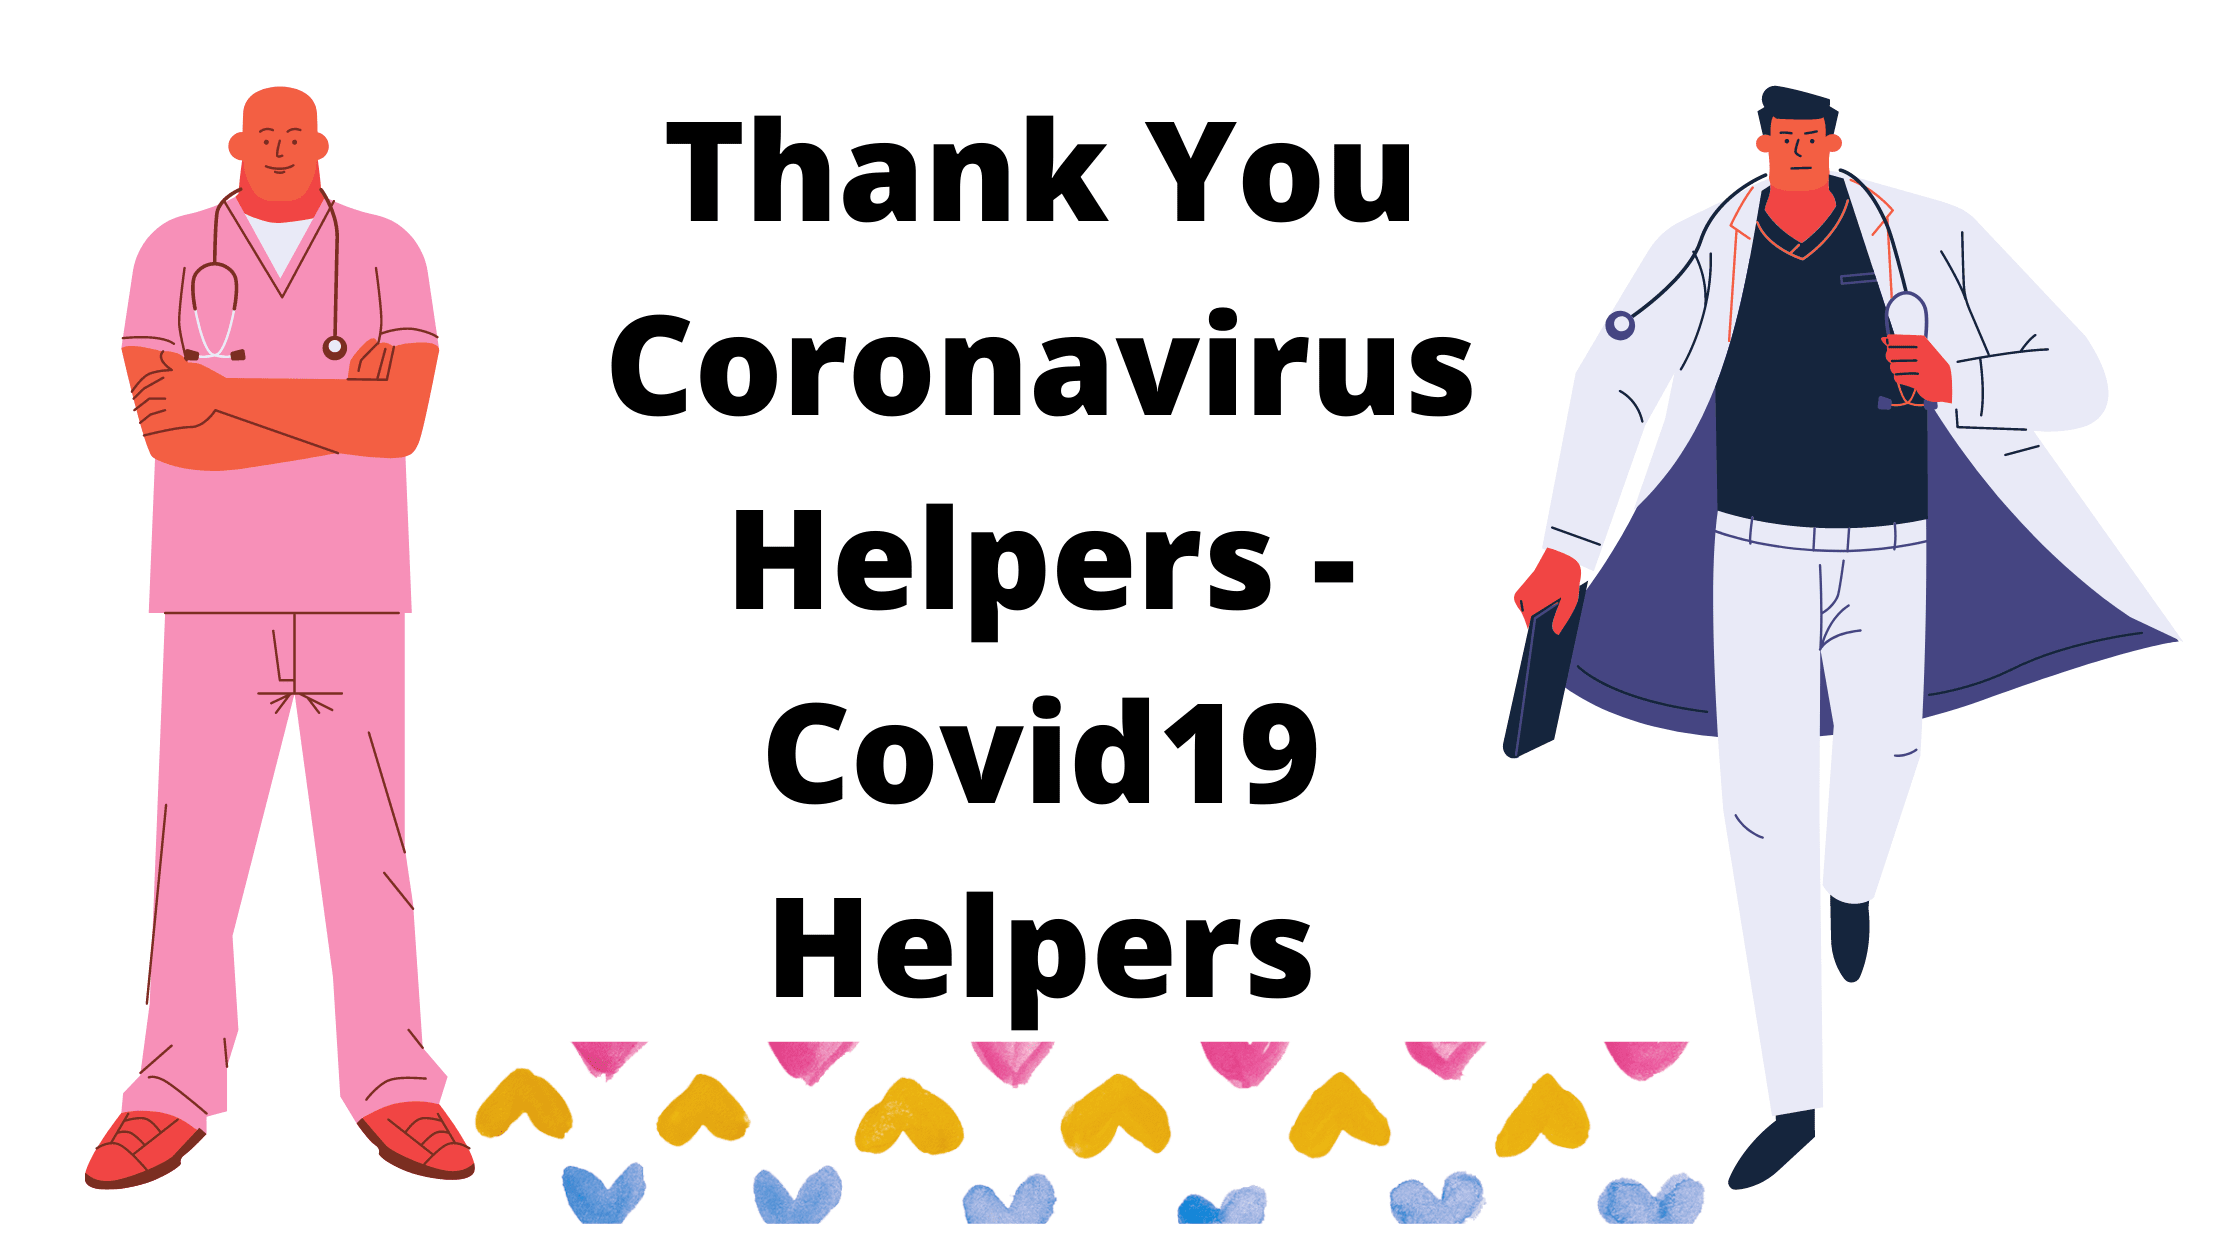 Thank You Coronavirus Helpers - Covid19 Helpers